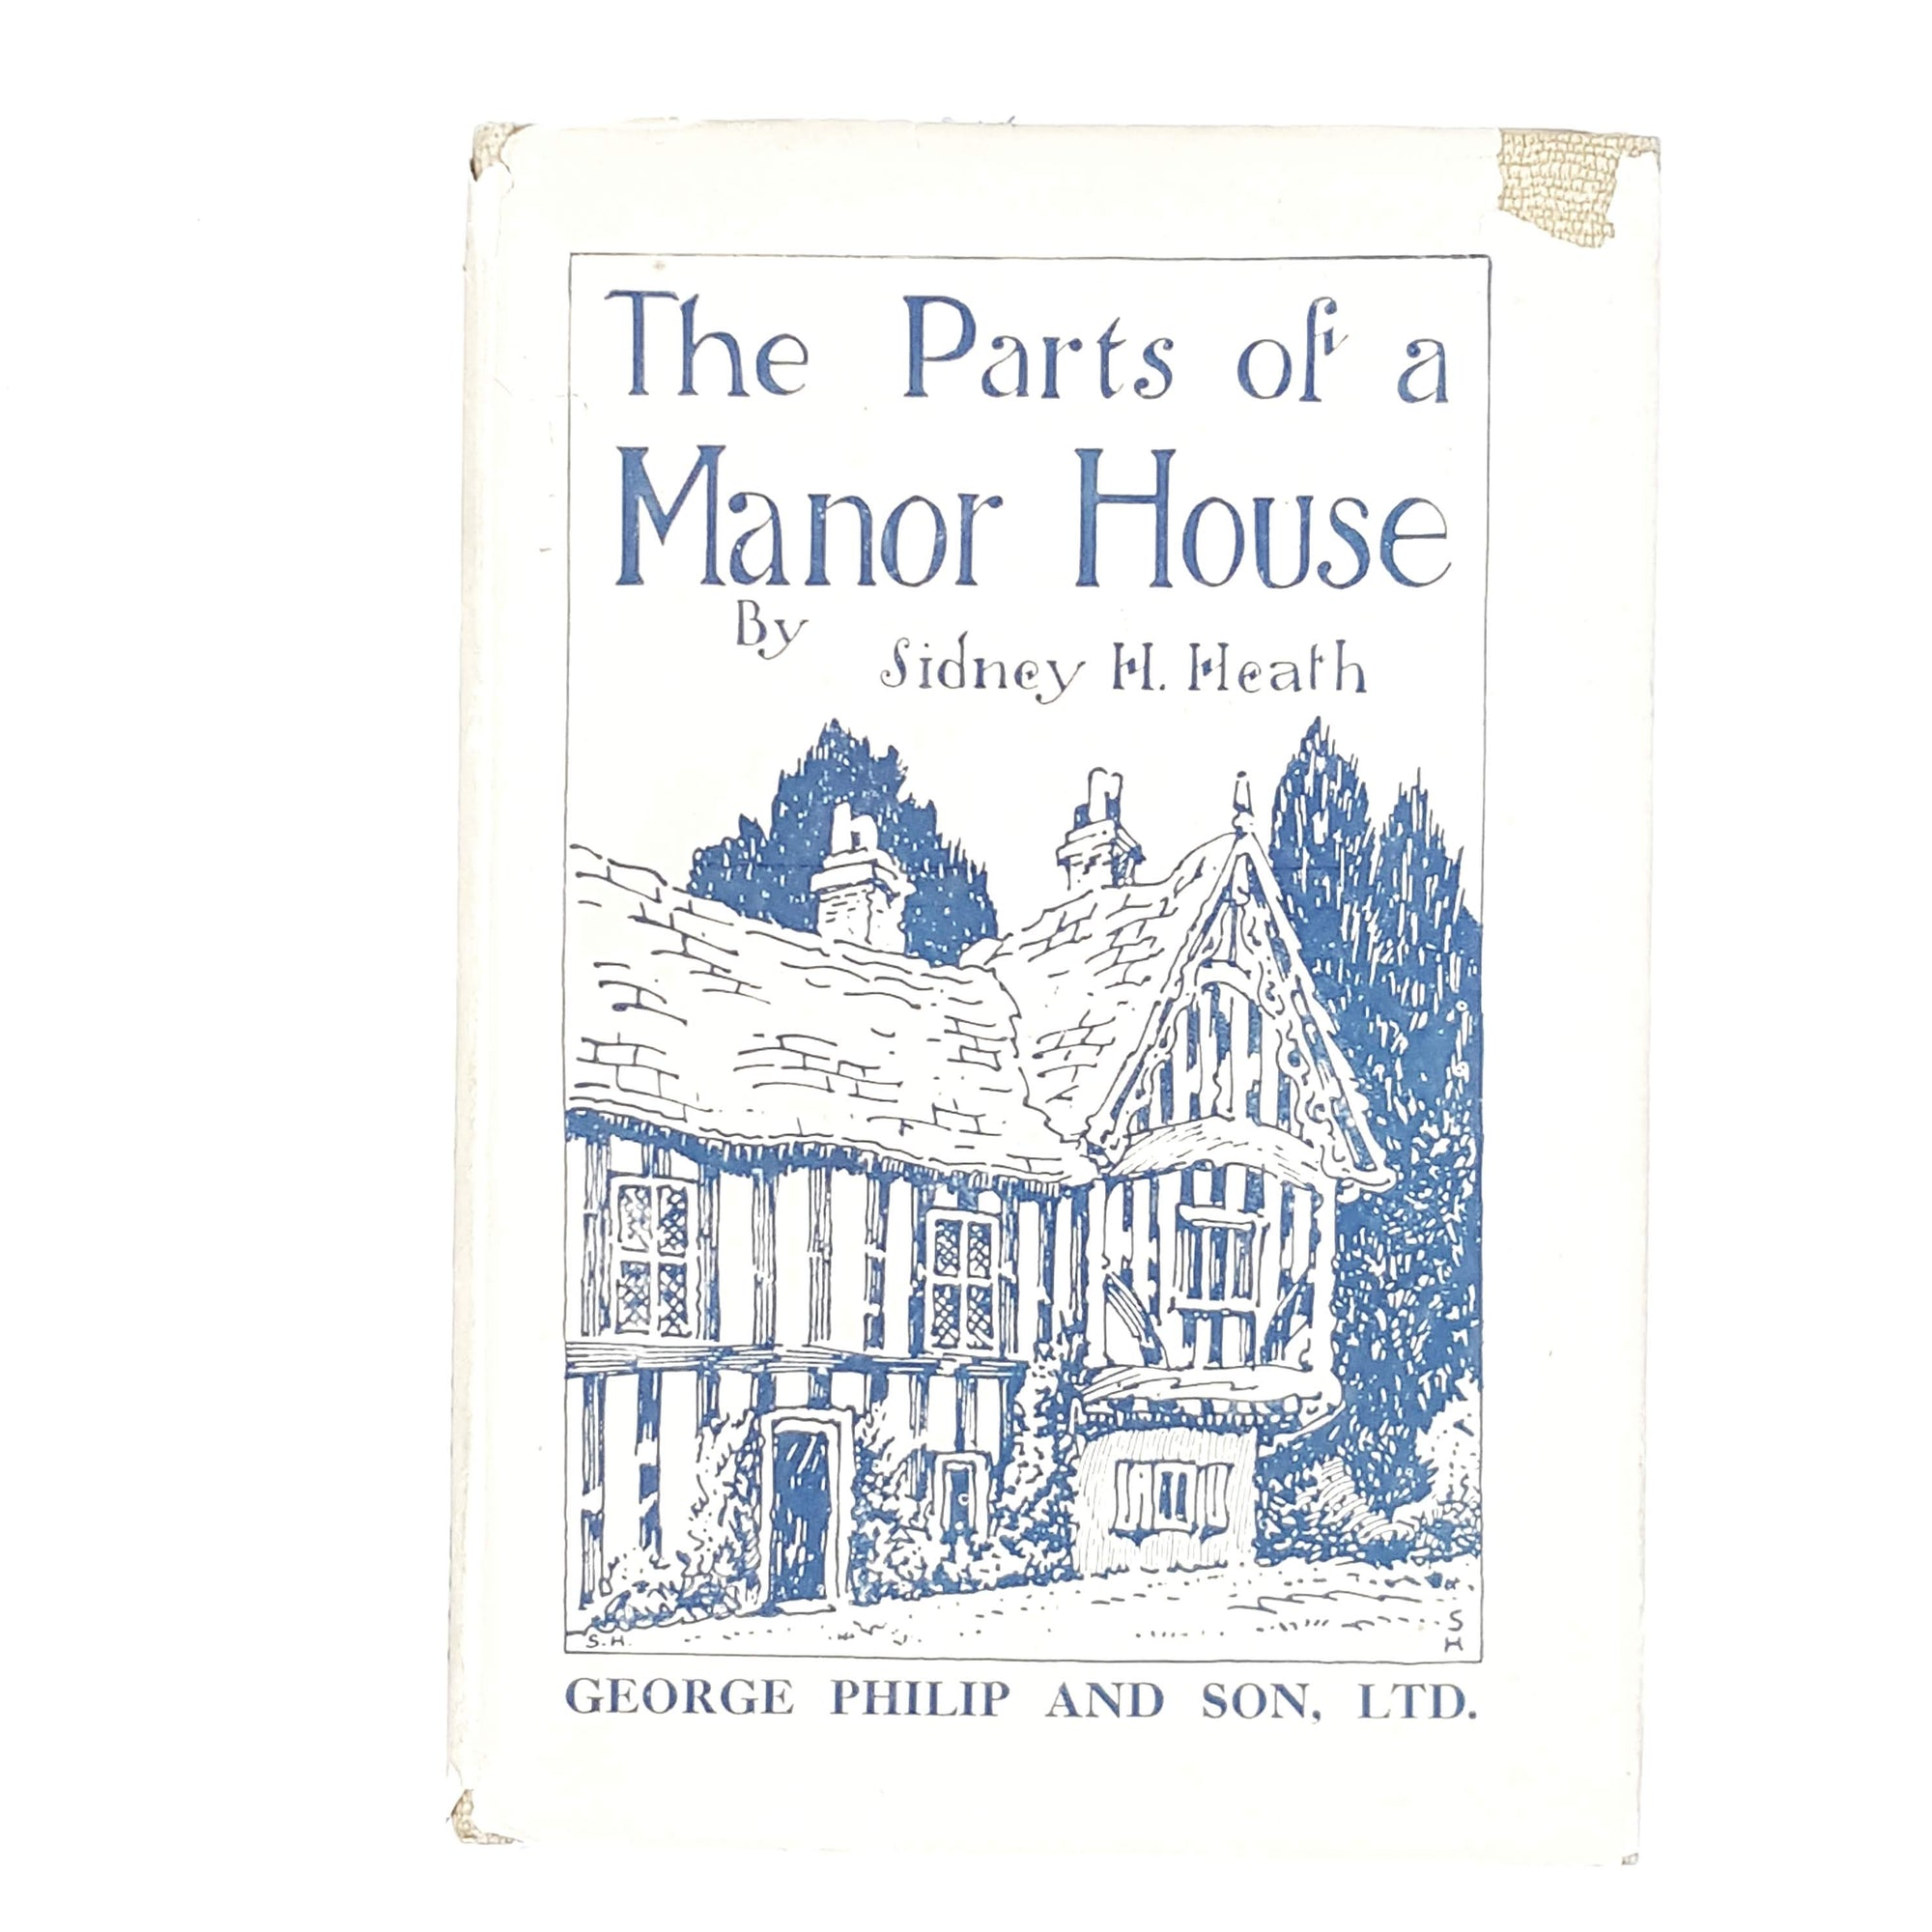 Illustrated The Parts of a Manor House by Sidney H. Heath 1928